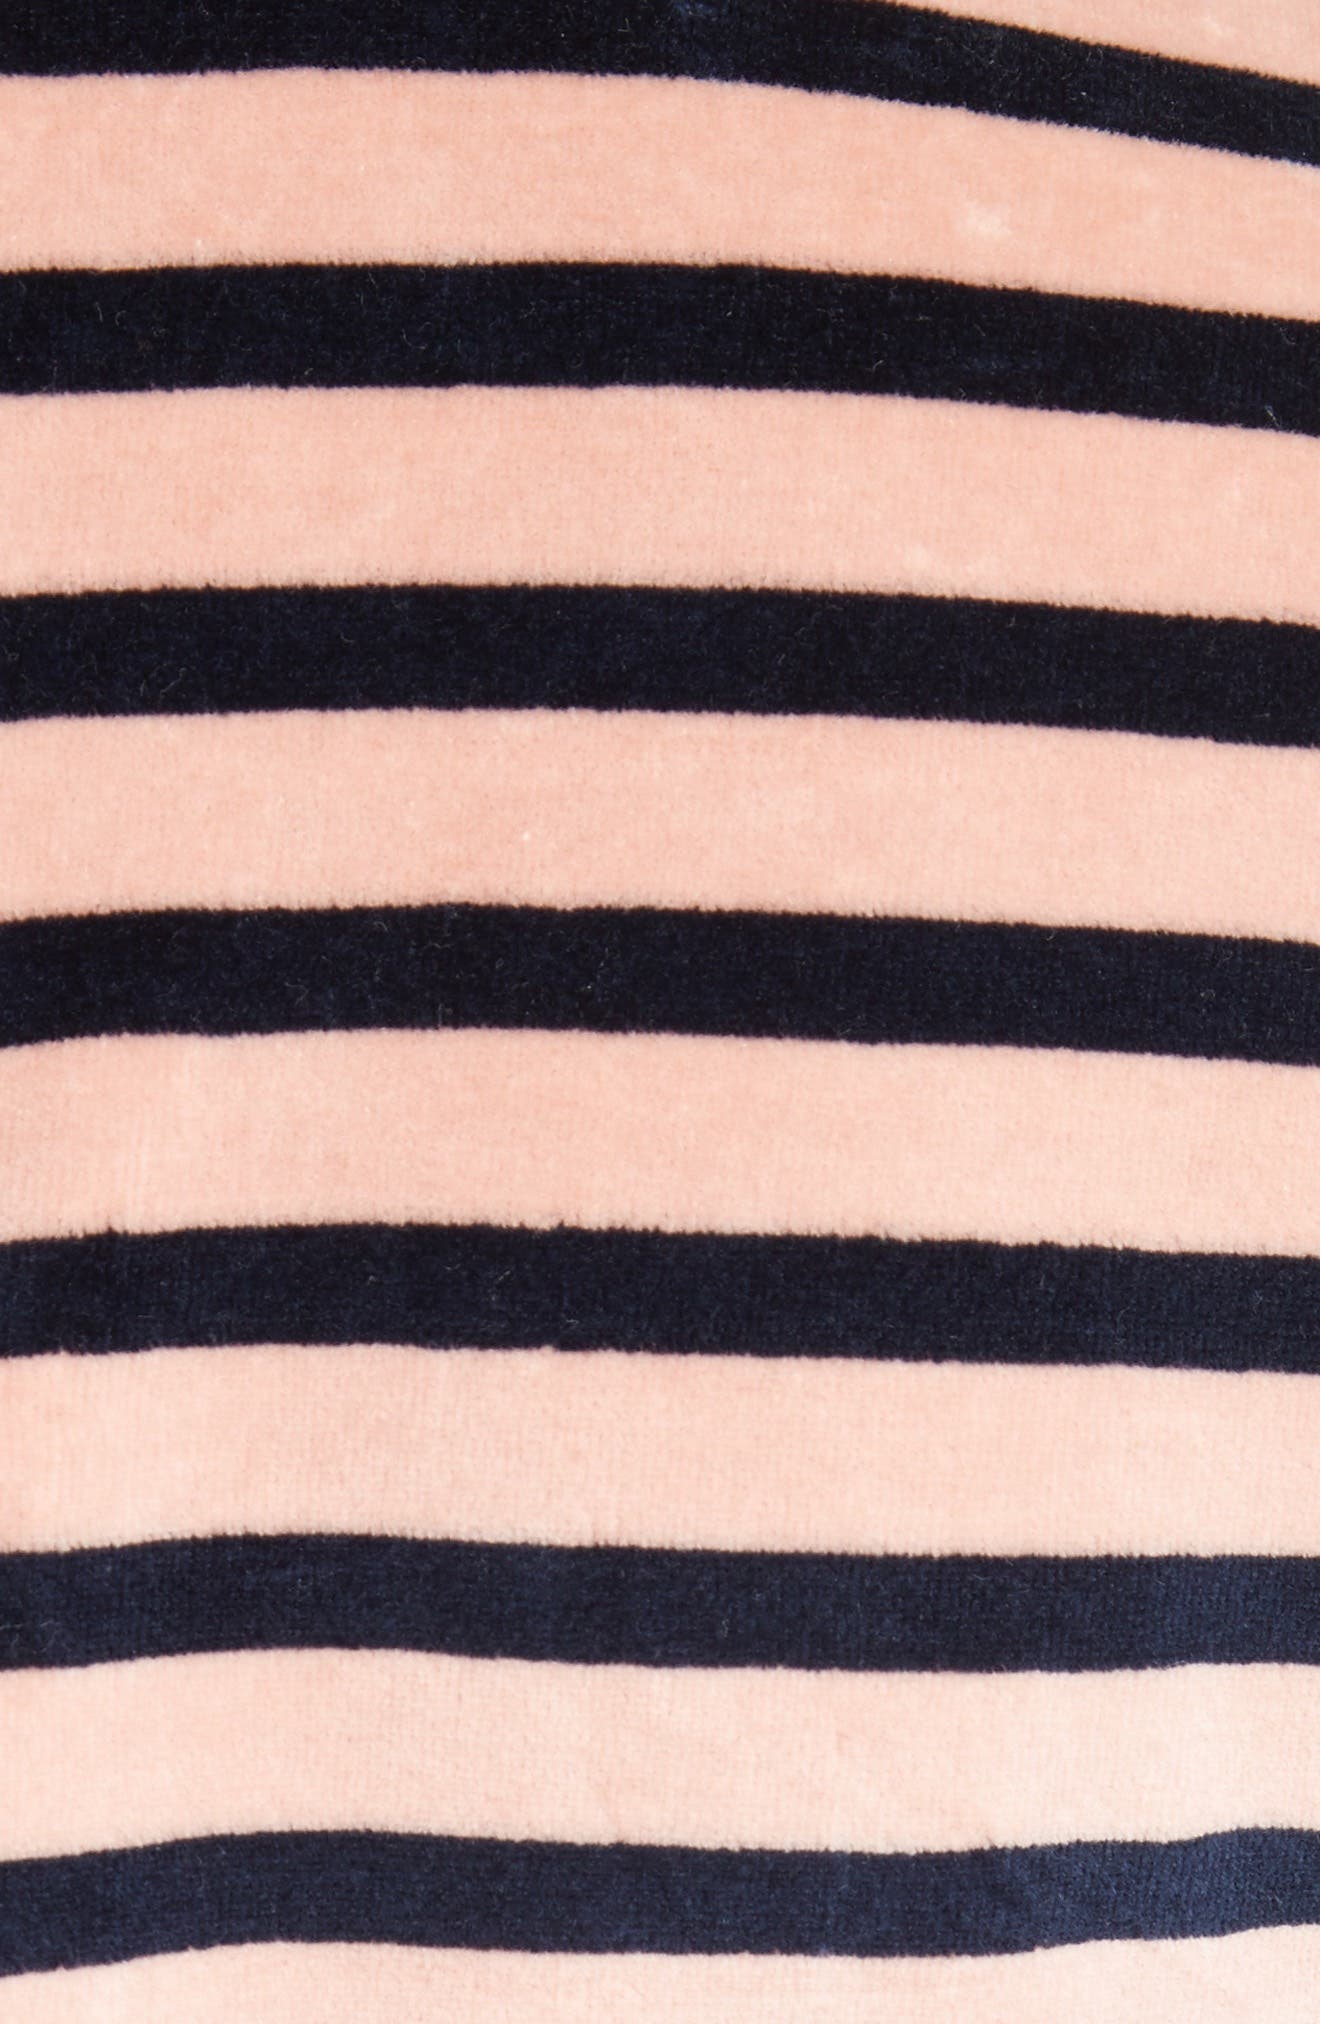 Stripe Velvet Dress,                             Alternate thumbnail 5, color,                             Rose/ Navy Stripe